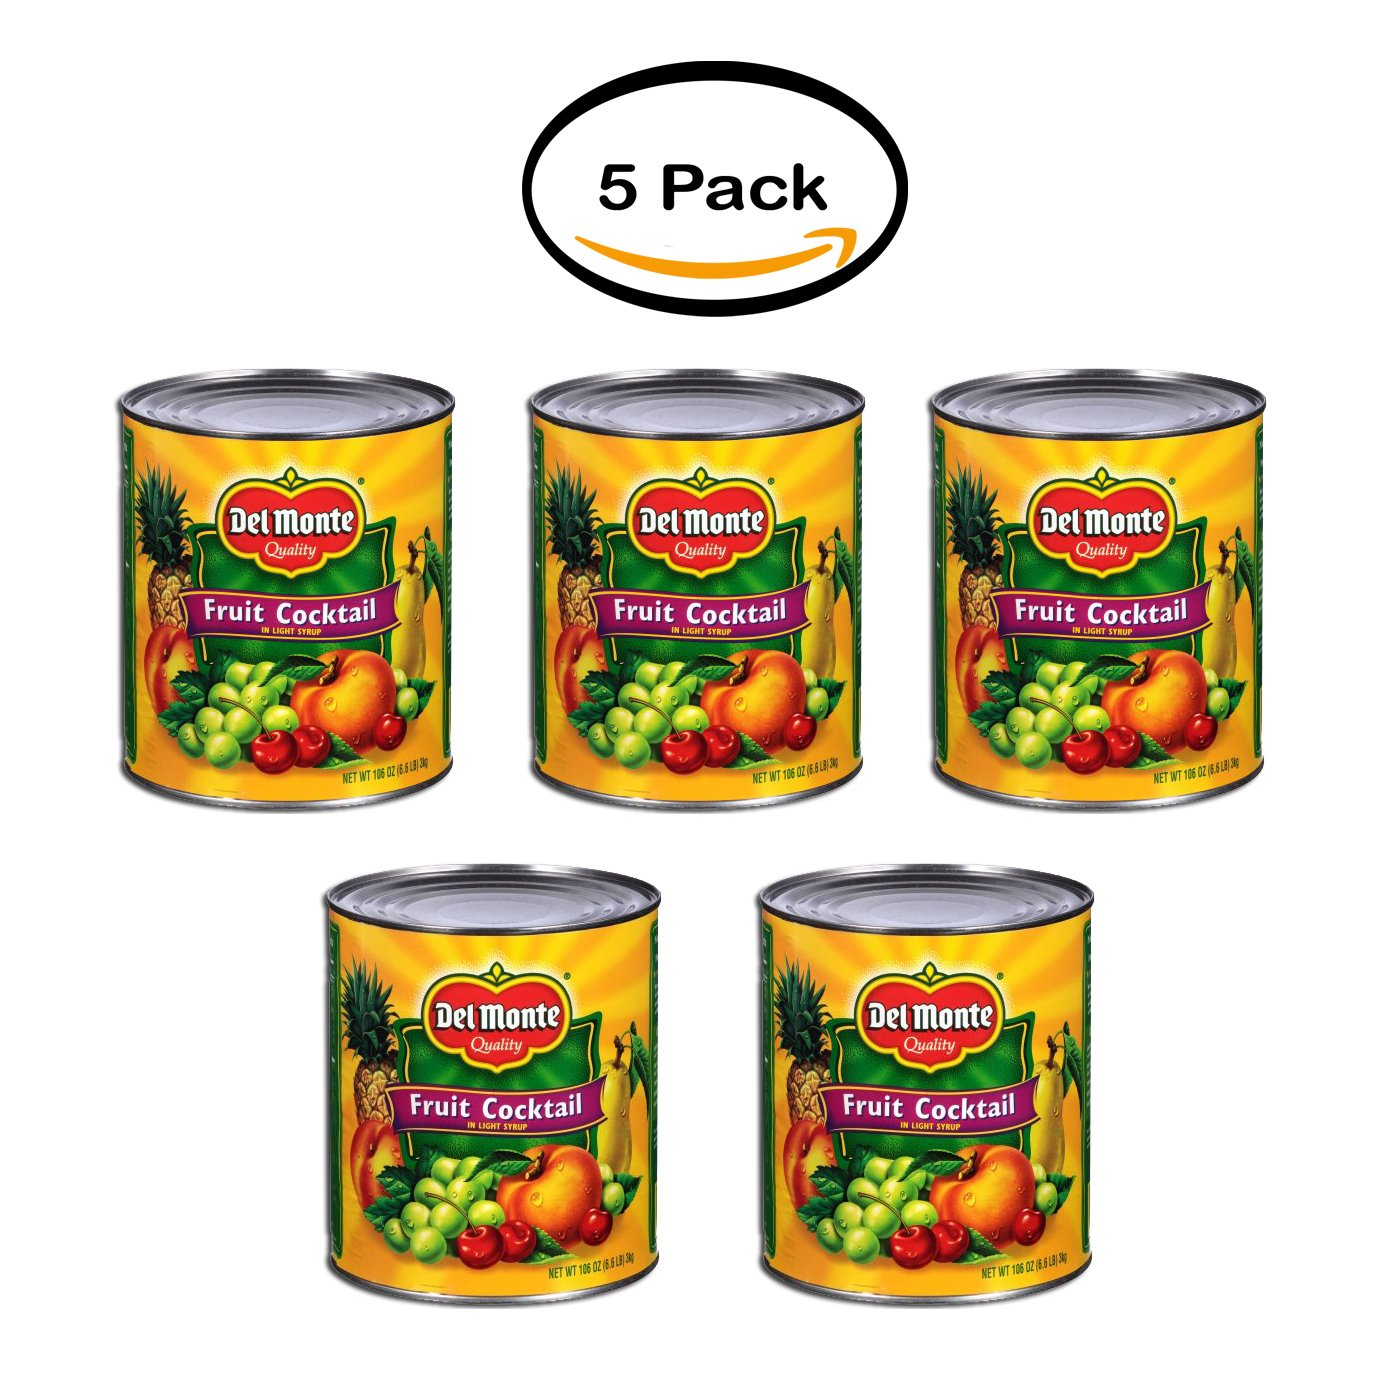 PACK OF 5 - Del Monte Quality Fruit Cocktail In Light Syrup, 106 oz by Del Monte